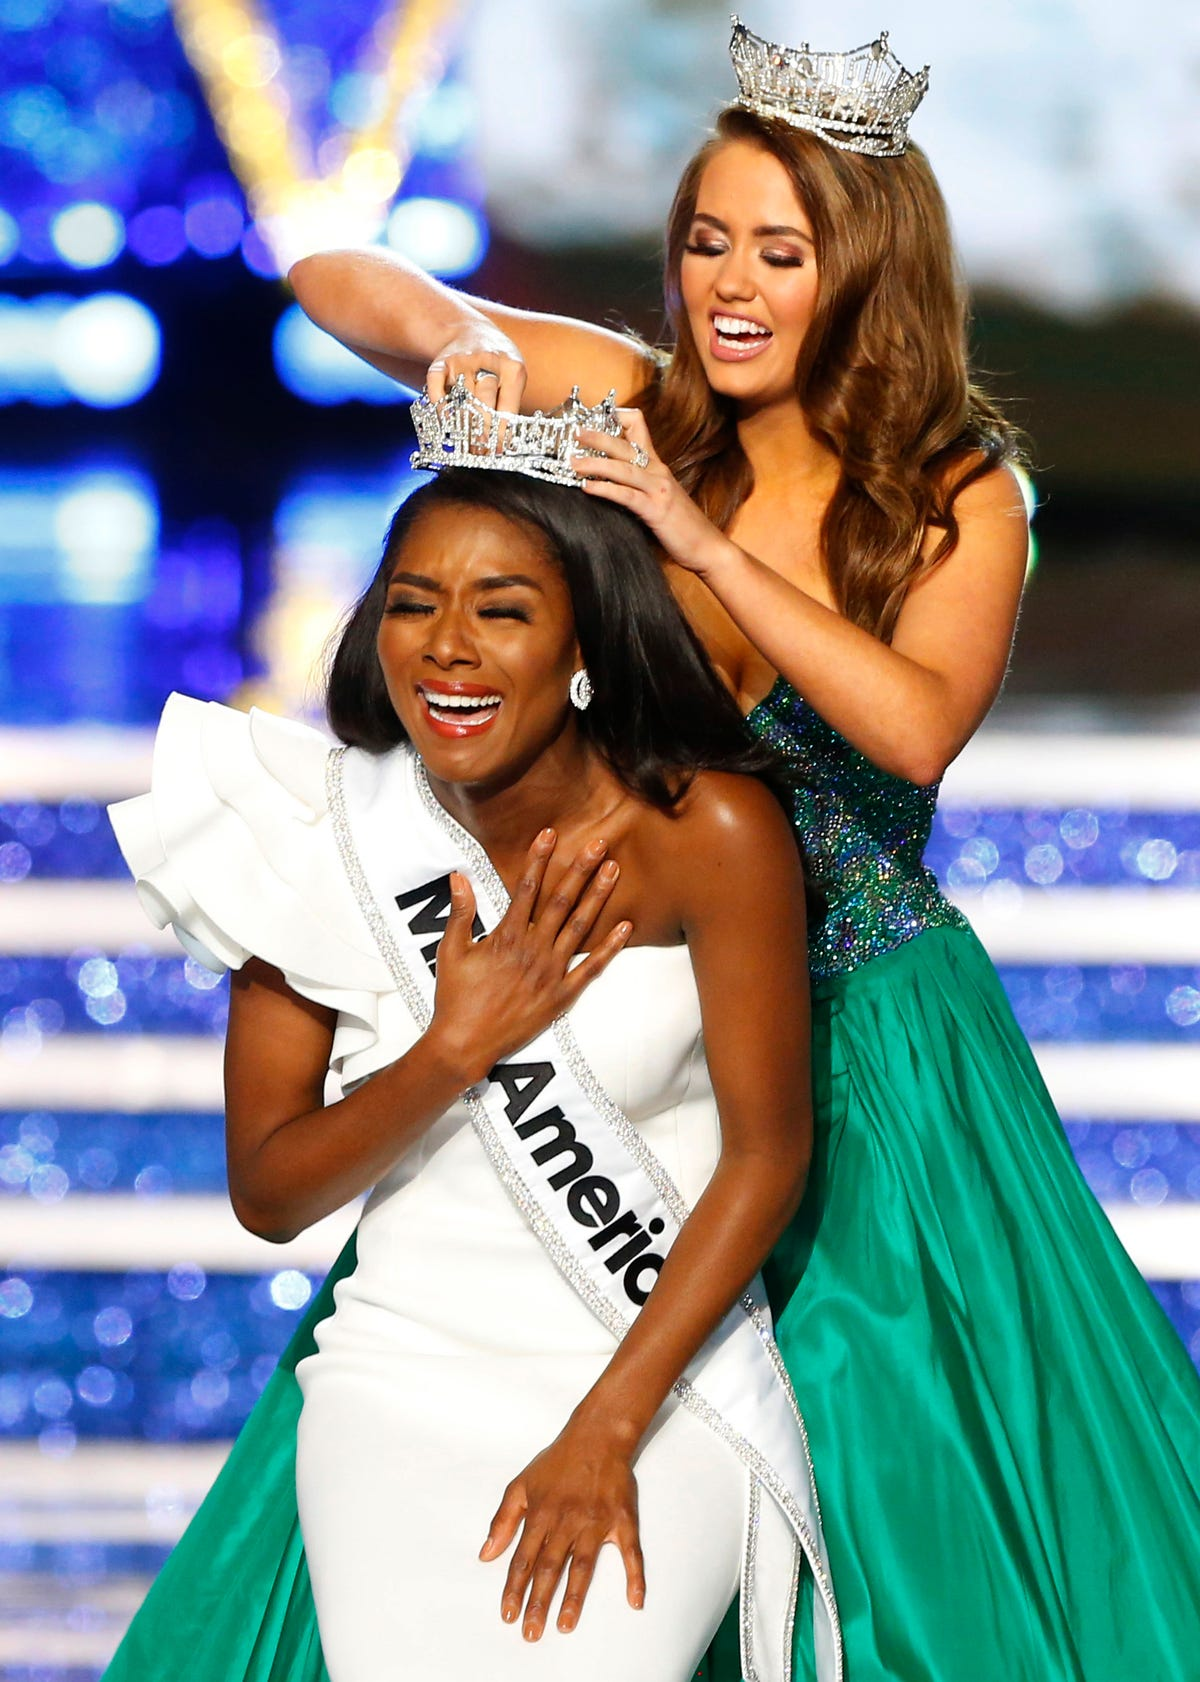 Miss America 2019 winner: Miss New York Nia Franklin is crowned